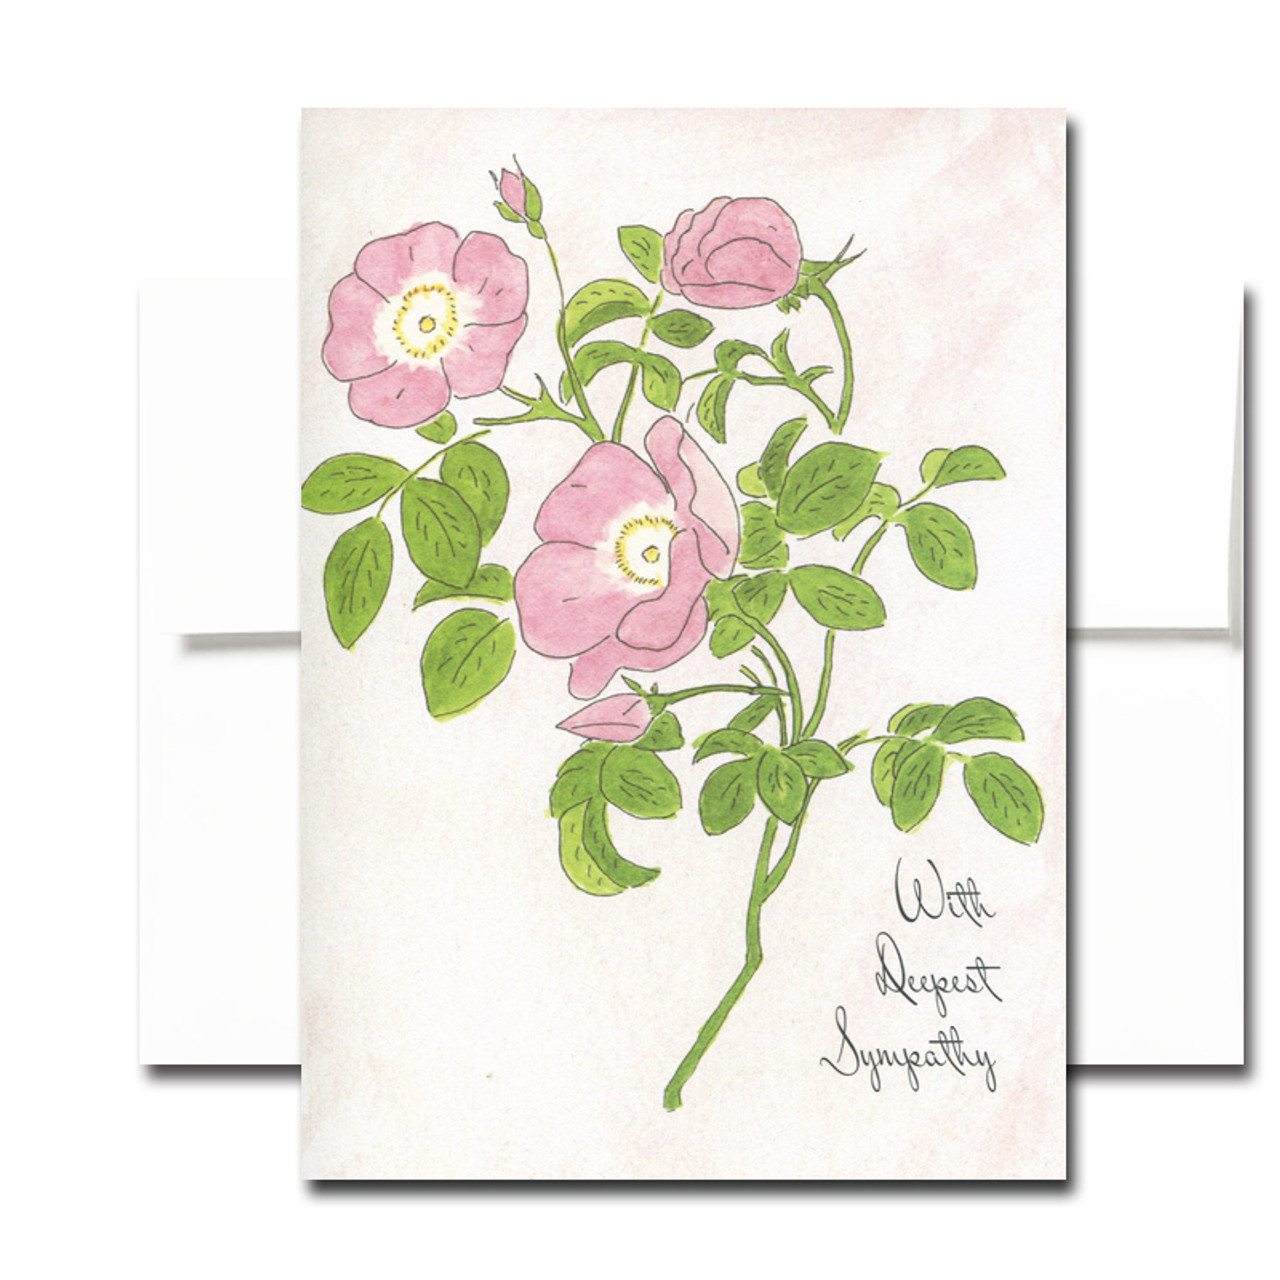 Sympathy Card: Wild Rose. Cover has a hand-painted watercolor illustration and the words With Deepest Sympathy